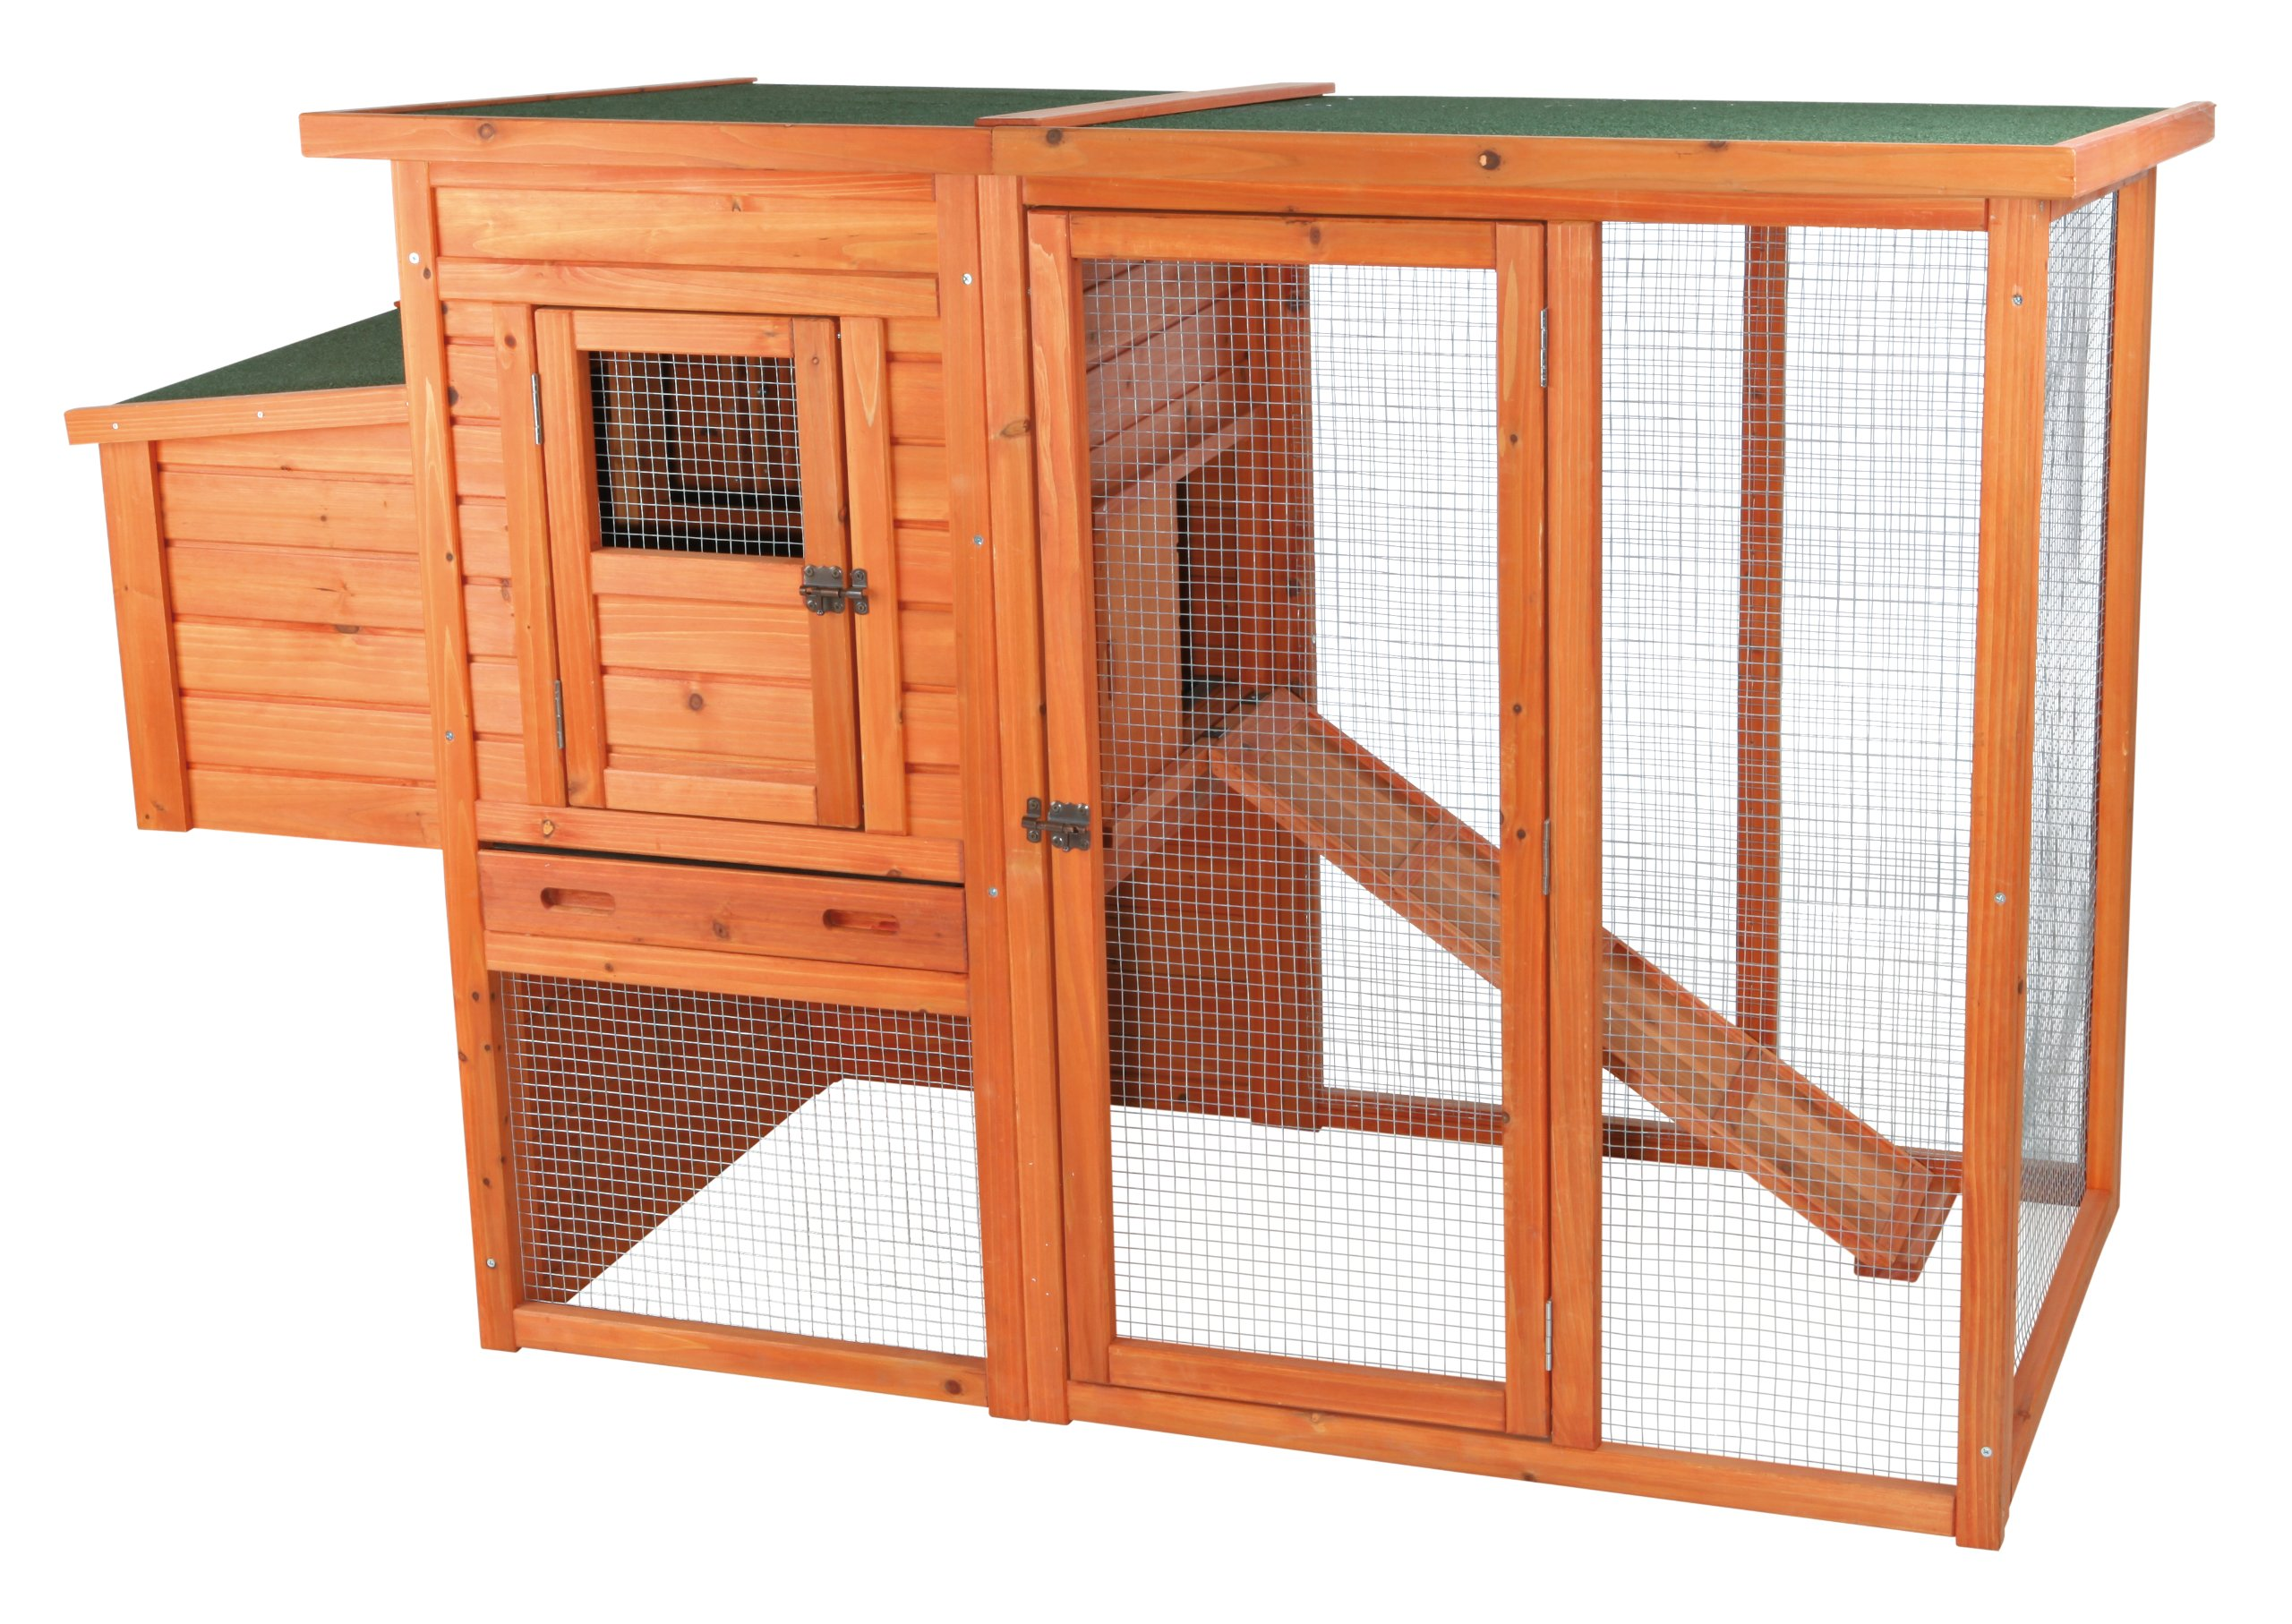 TRIXIE Pet Products Chicken Coop with Outdoor Run, 66.75 x 30.25 x 41.25 inches by Trixie